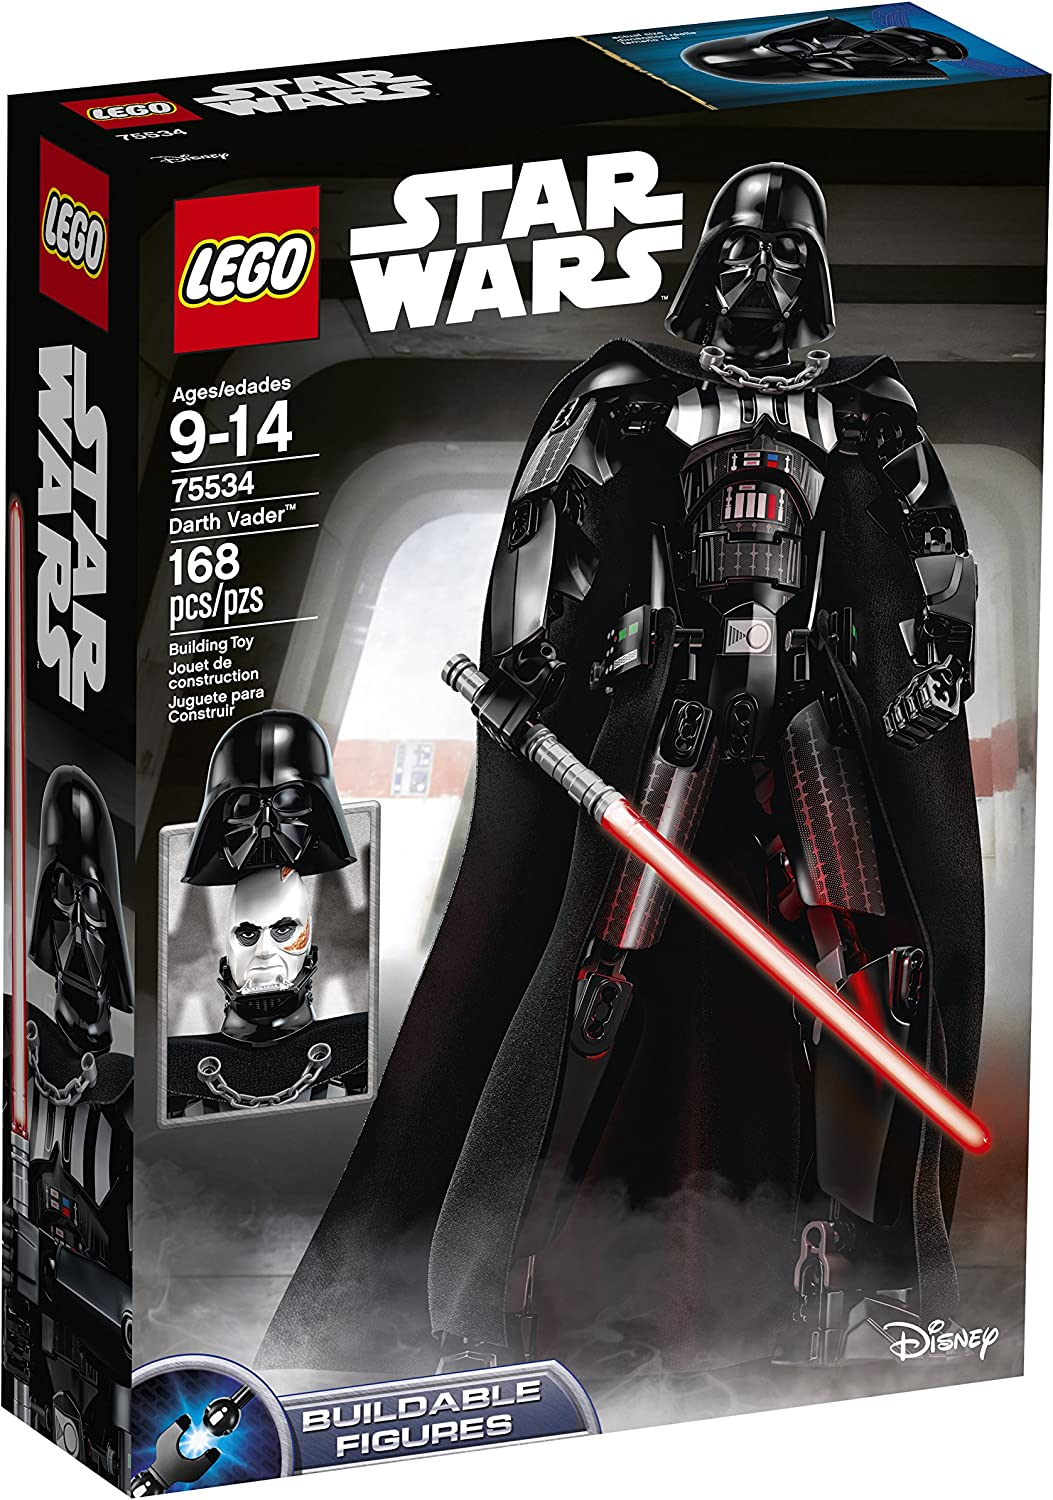 Lego Darth Vader Light Gray Head 10123 7150 7152 Star Wars Minifigure